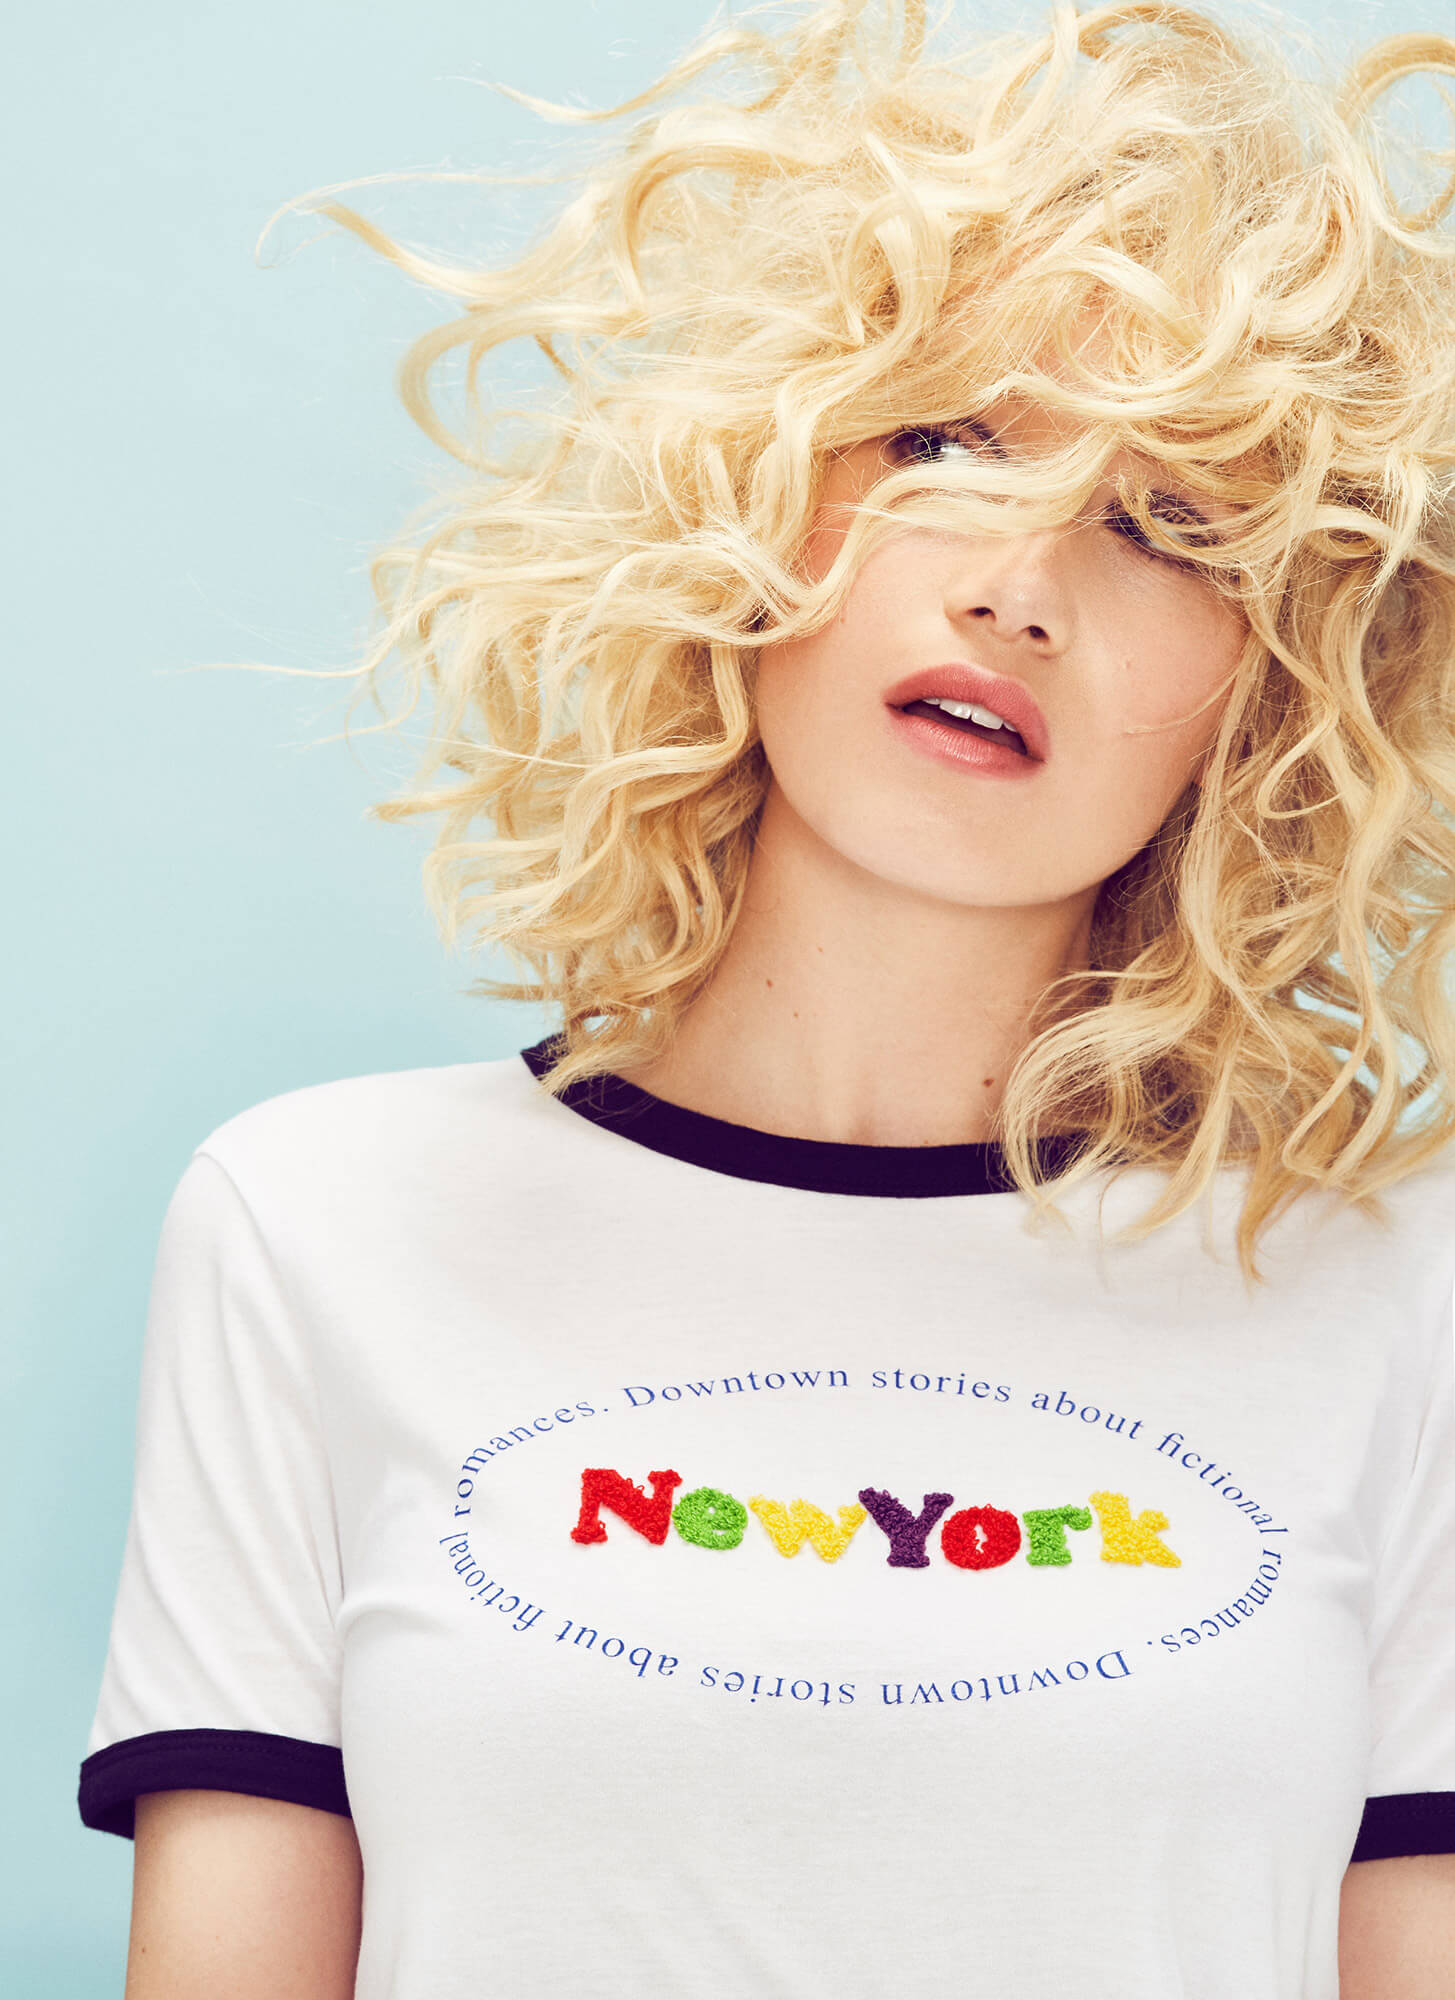 Vika Pobeda - Los Angeles Fashion Photographer / Zara NY T-shirt